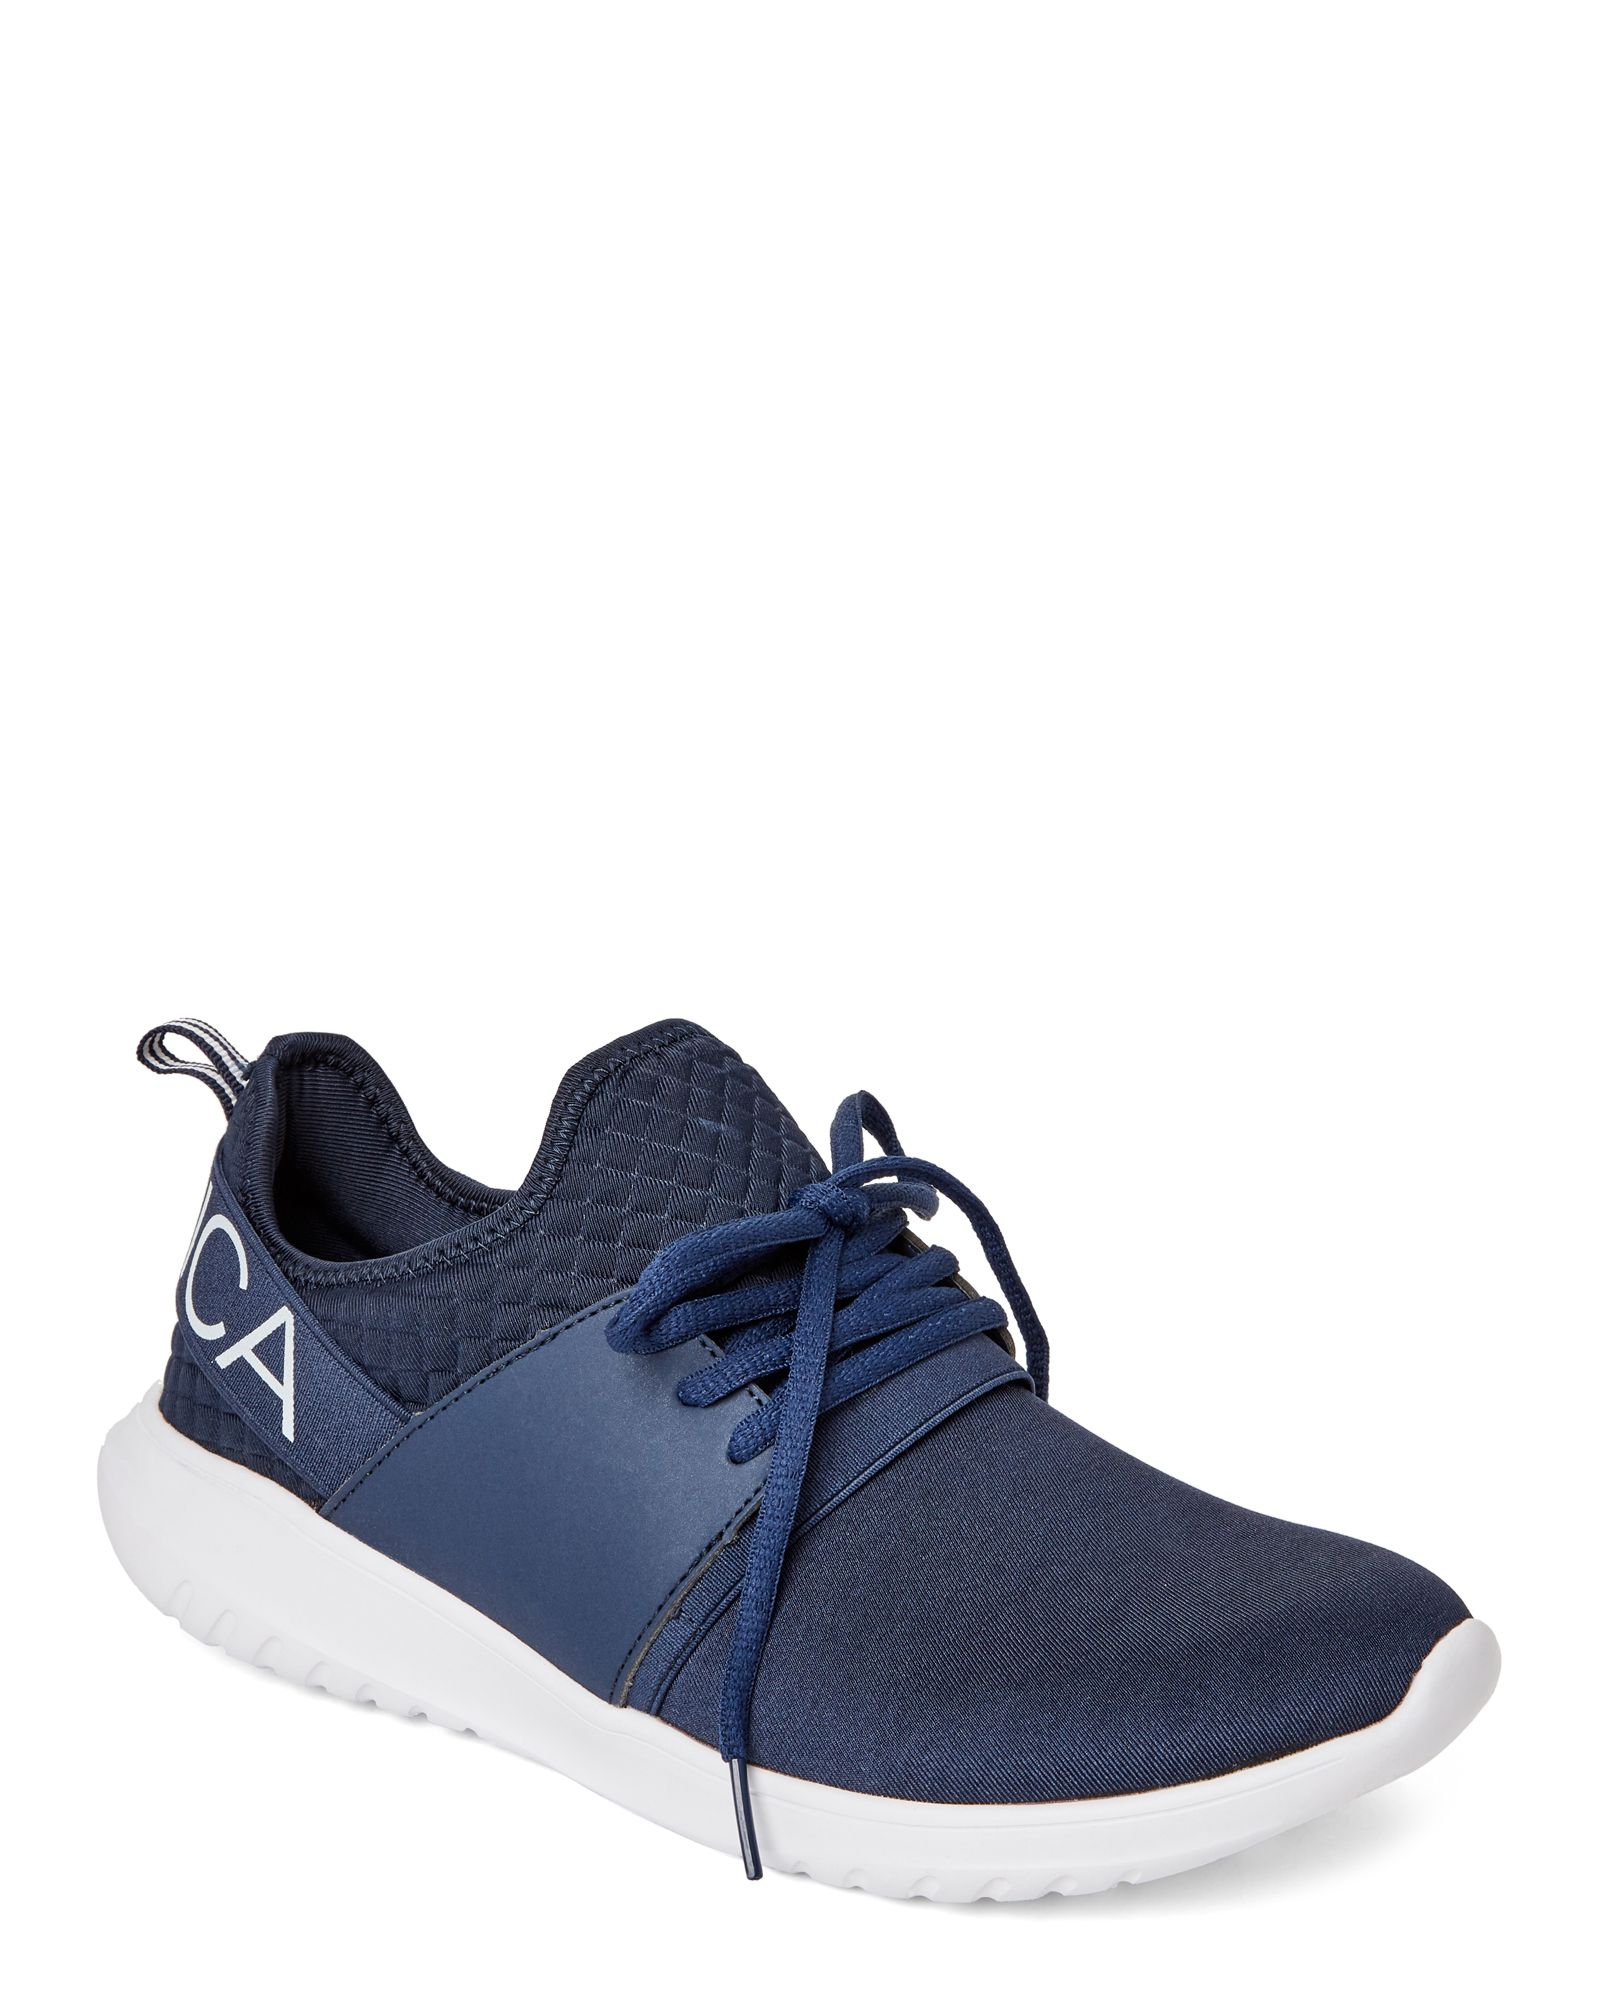 b9a680c9e961 Navy Kappil Jogger Sneakers in 2019